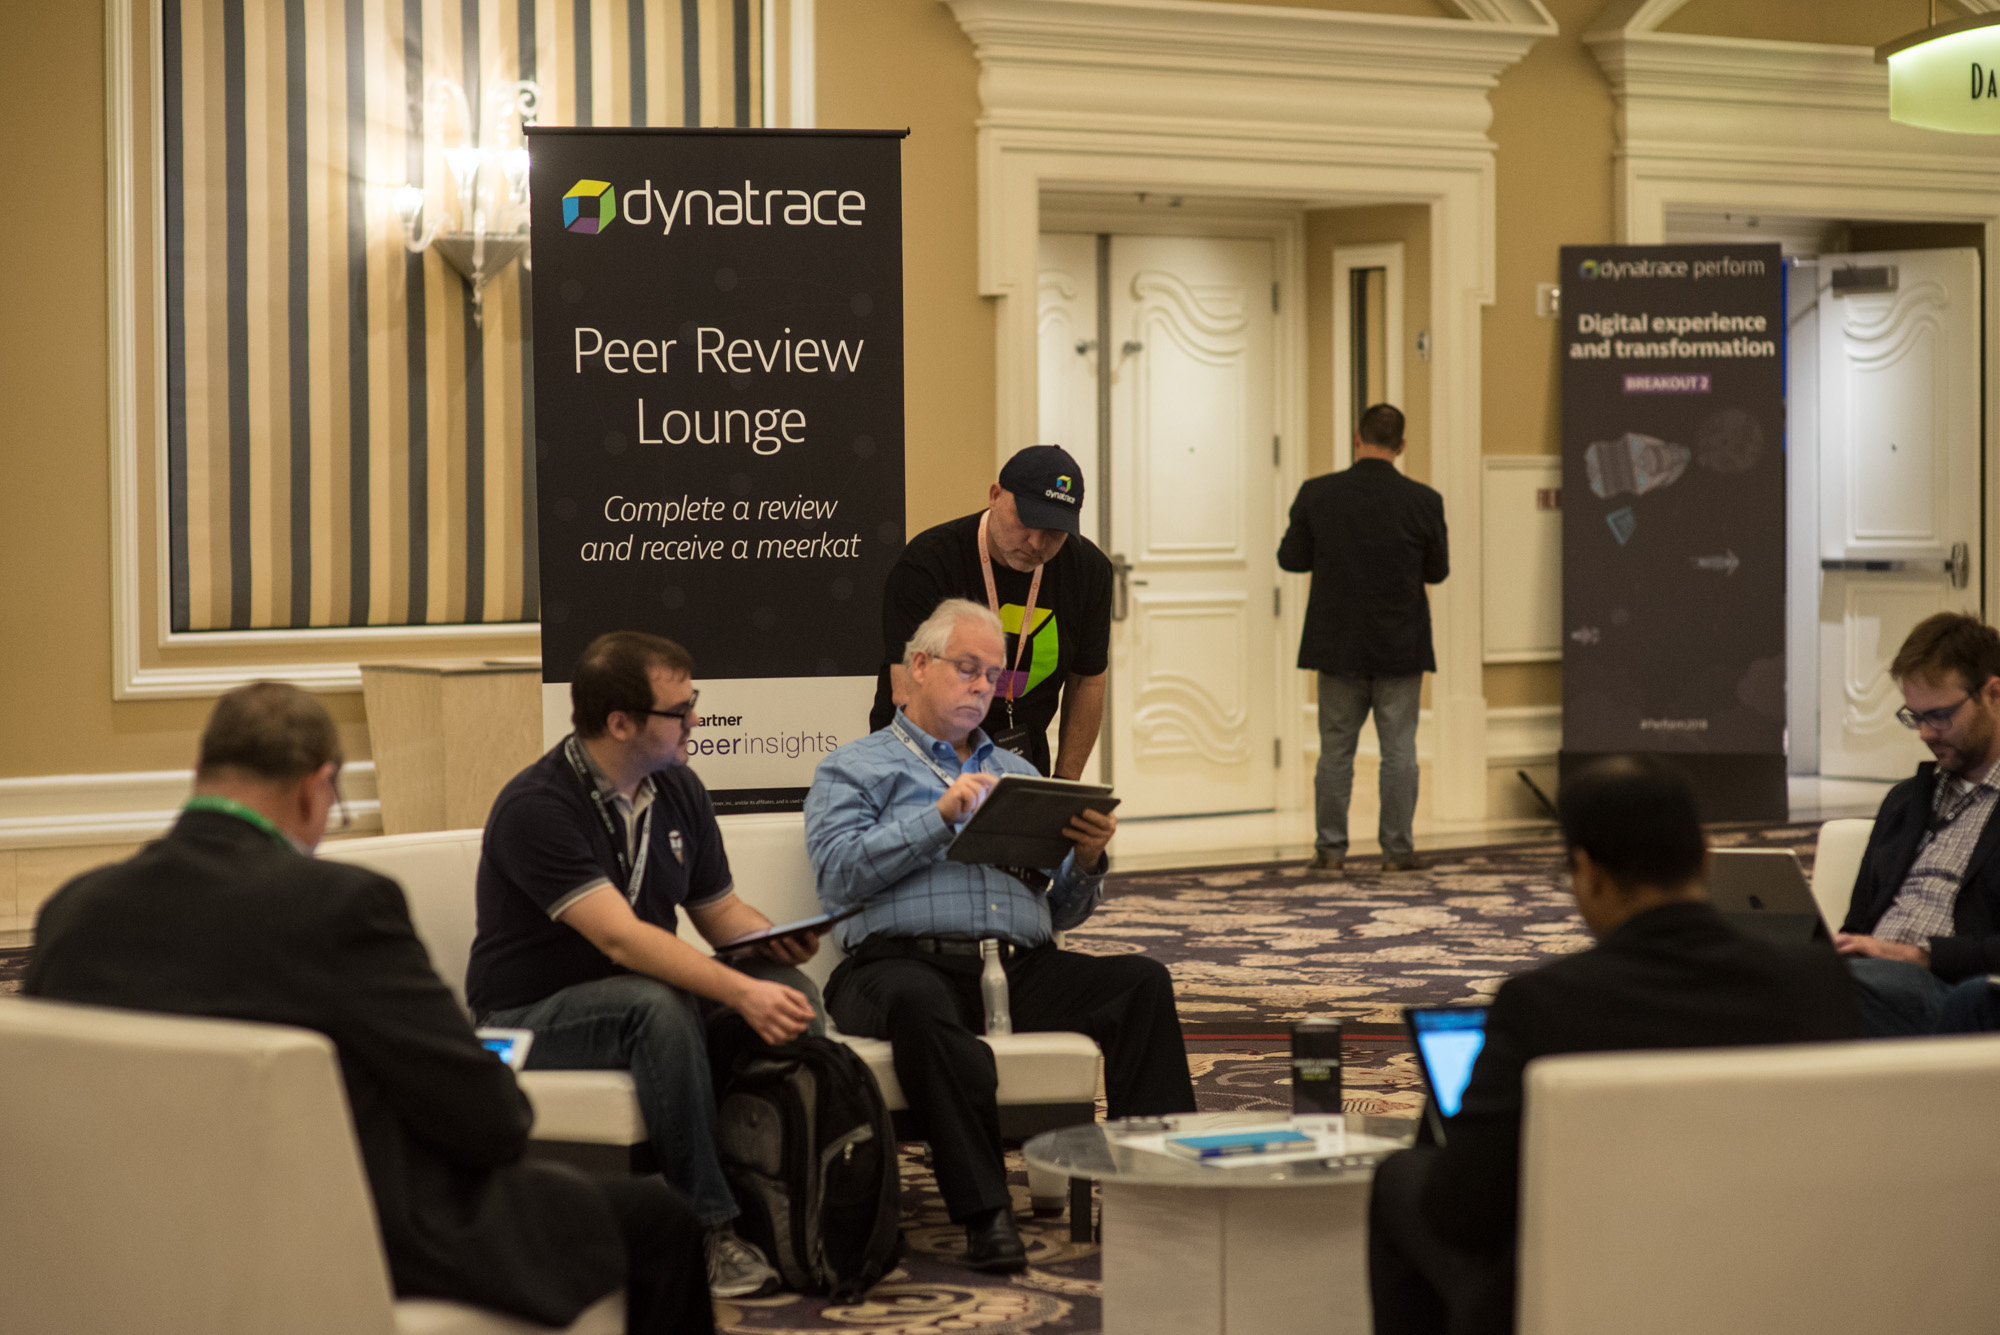 Peer review lounge between sessions